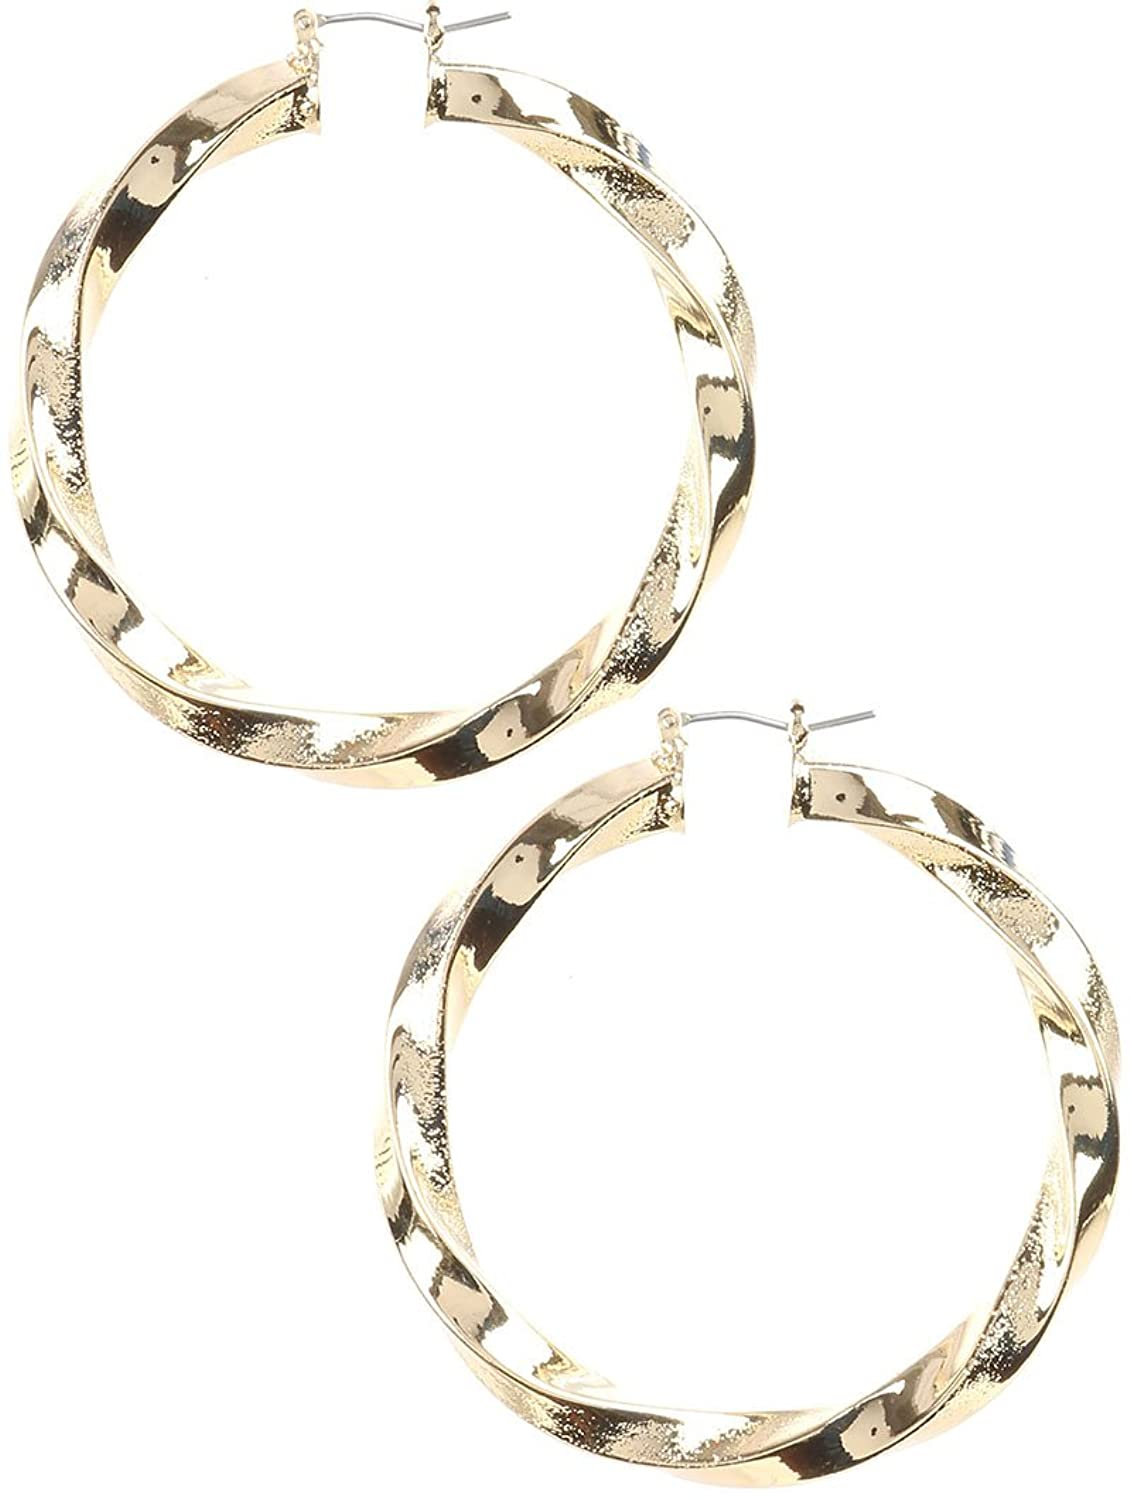 Destinee's gold TWISTED HOLLOW METAL HOOP EARRING